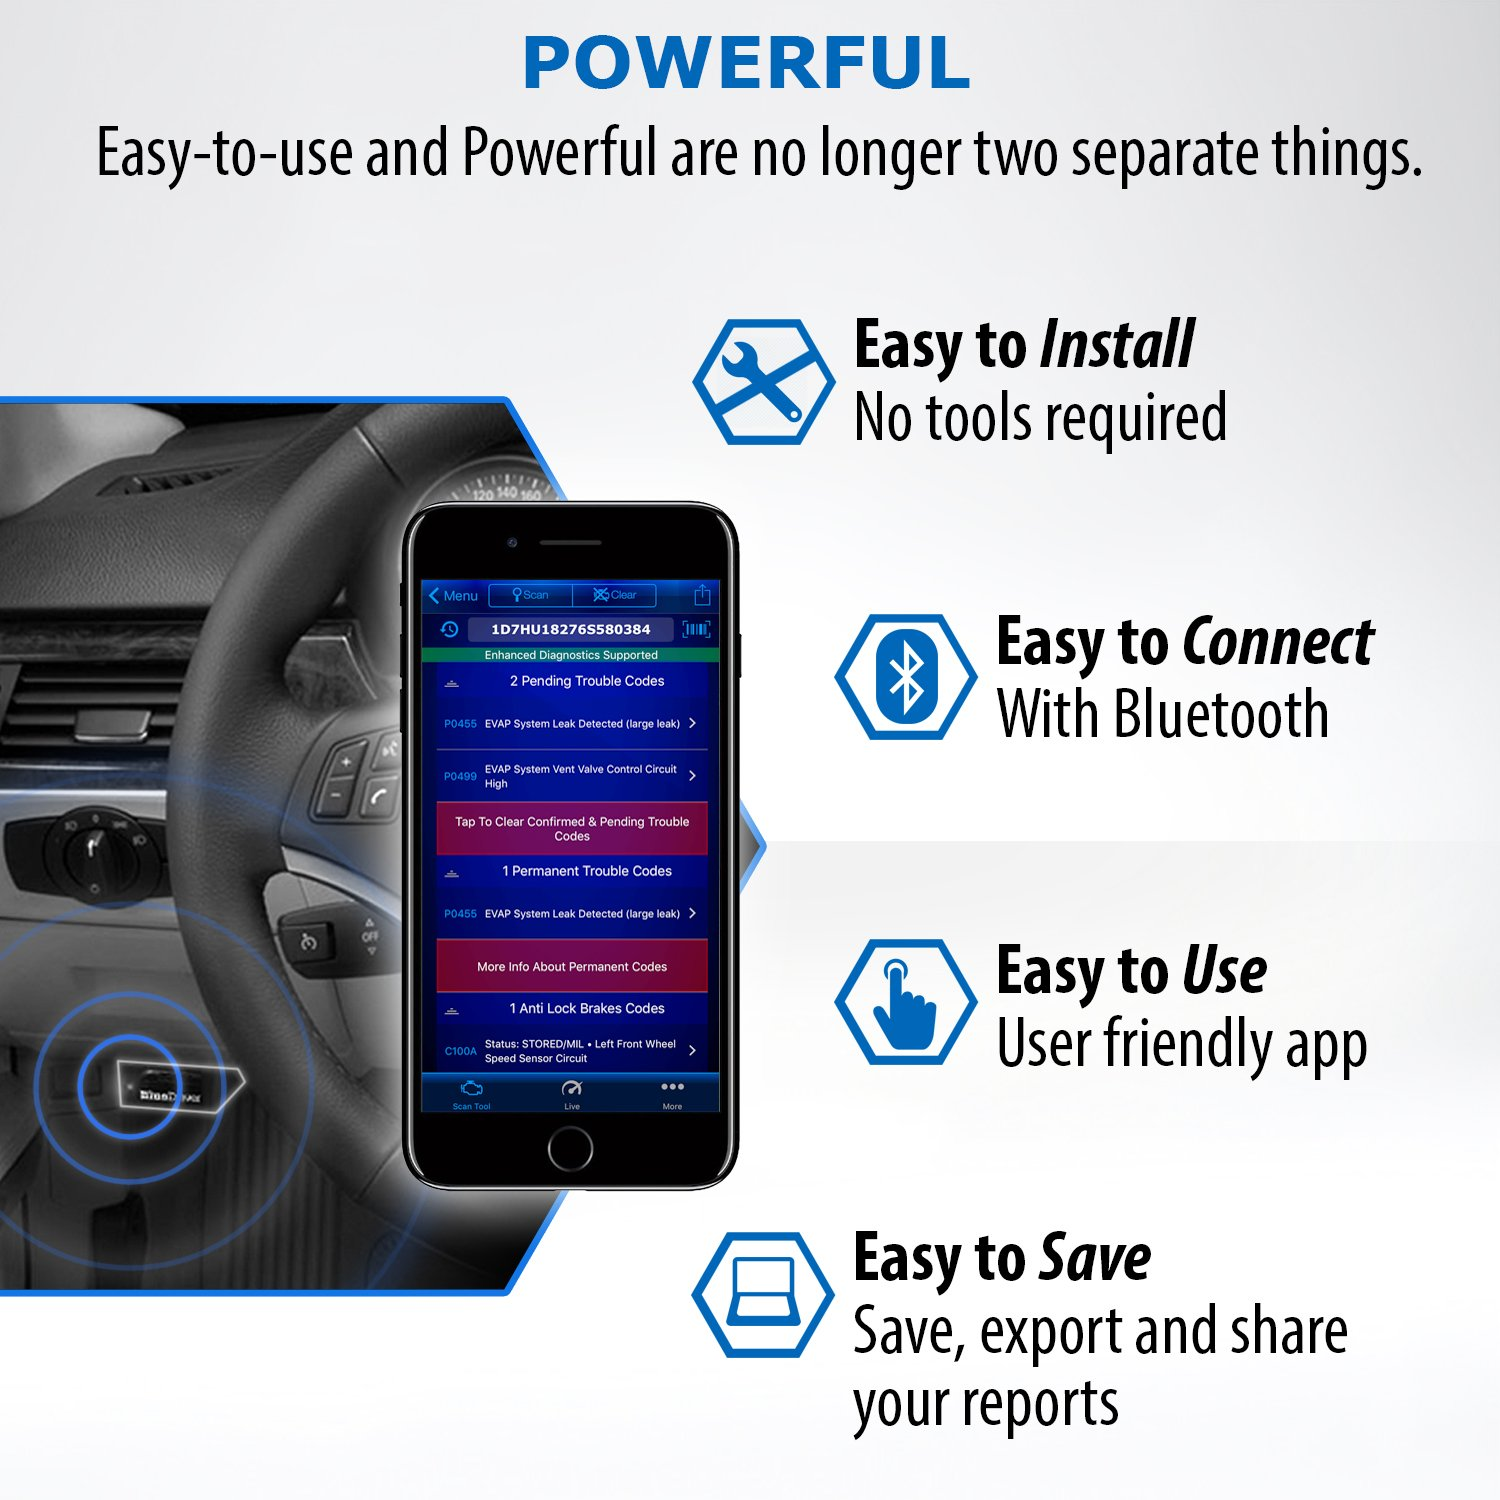 Bluedriver Bluetooth Pro Obdii Scan Tool For Iphone Style In A 7 Way Rv Wiring Diagram Lighting Android Automotive